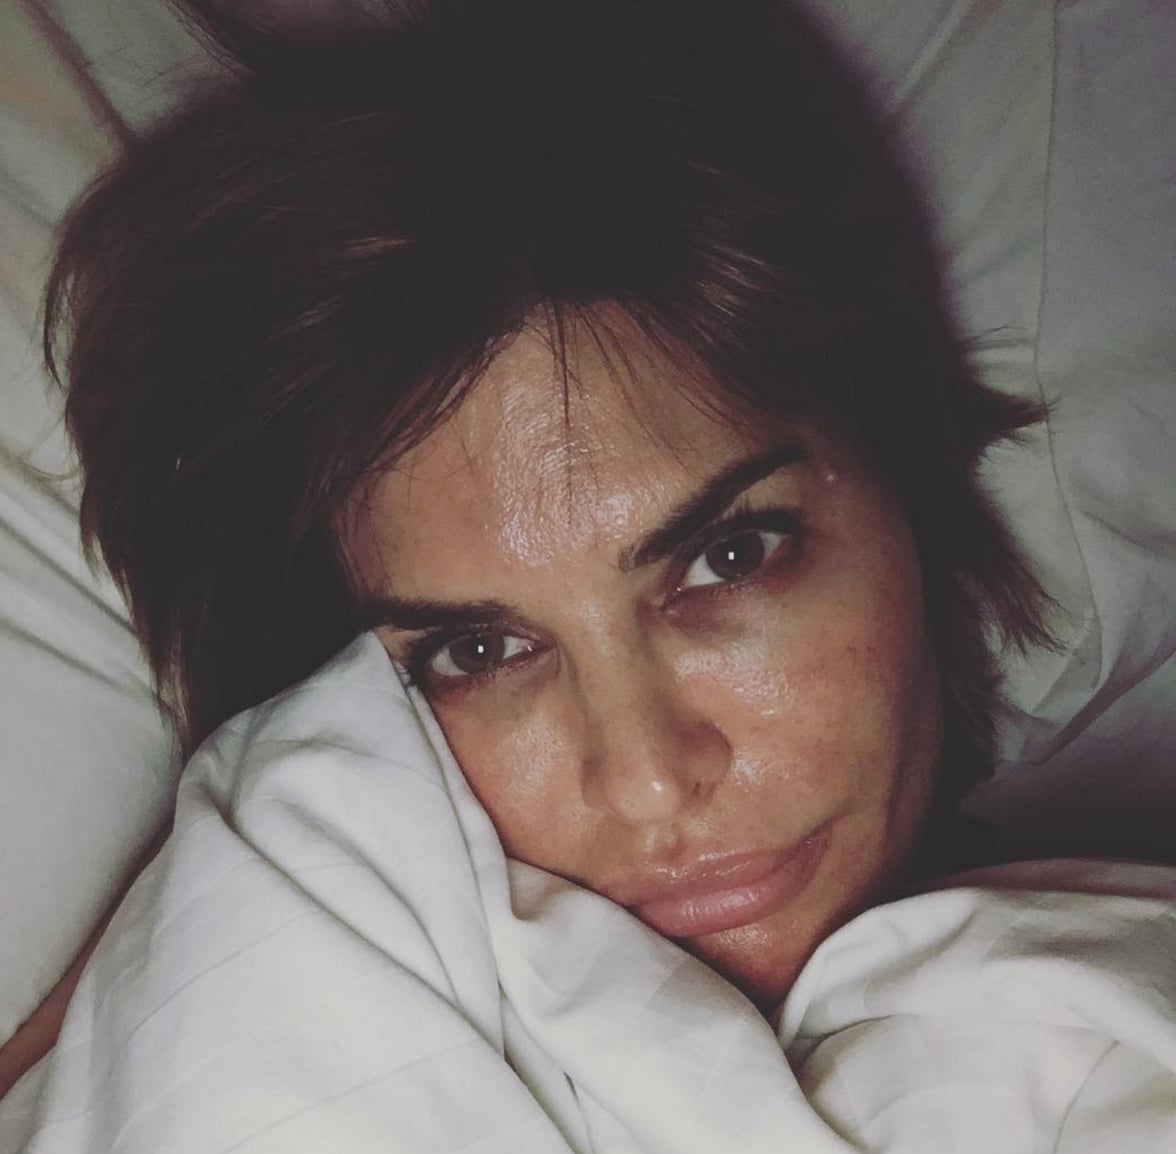 Selfie Lisa Rinna naked (72 foto and video), Tits, Cleavage, Instagram, butt 2006